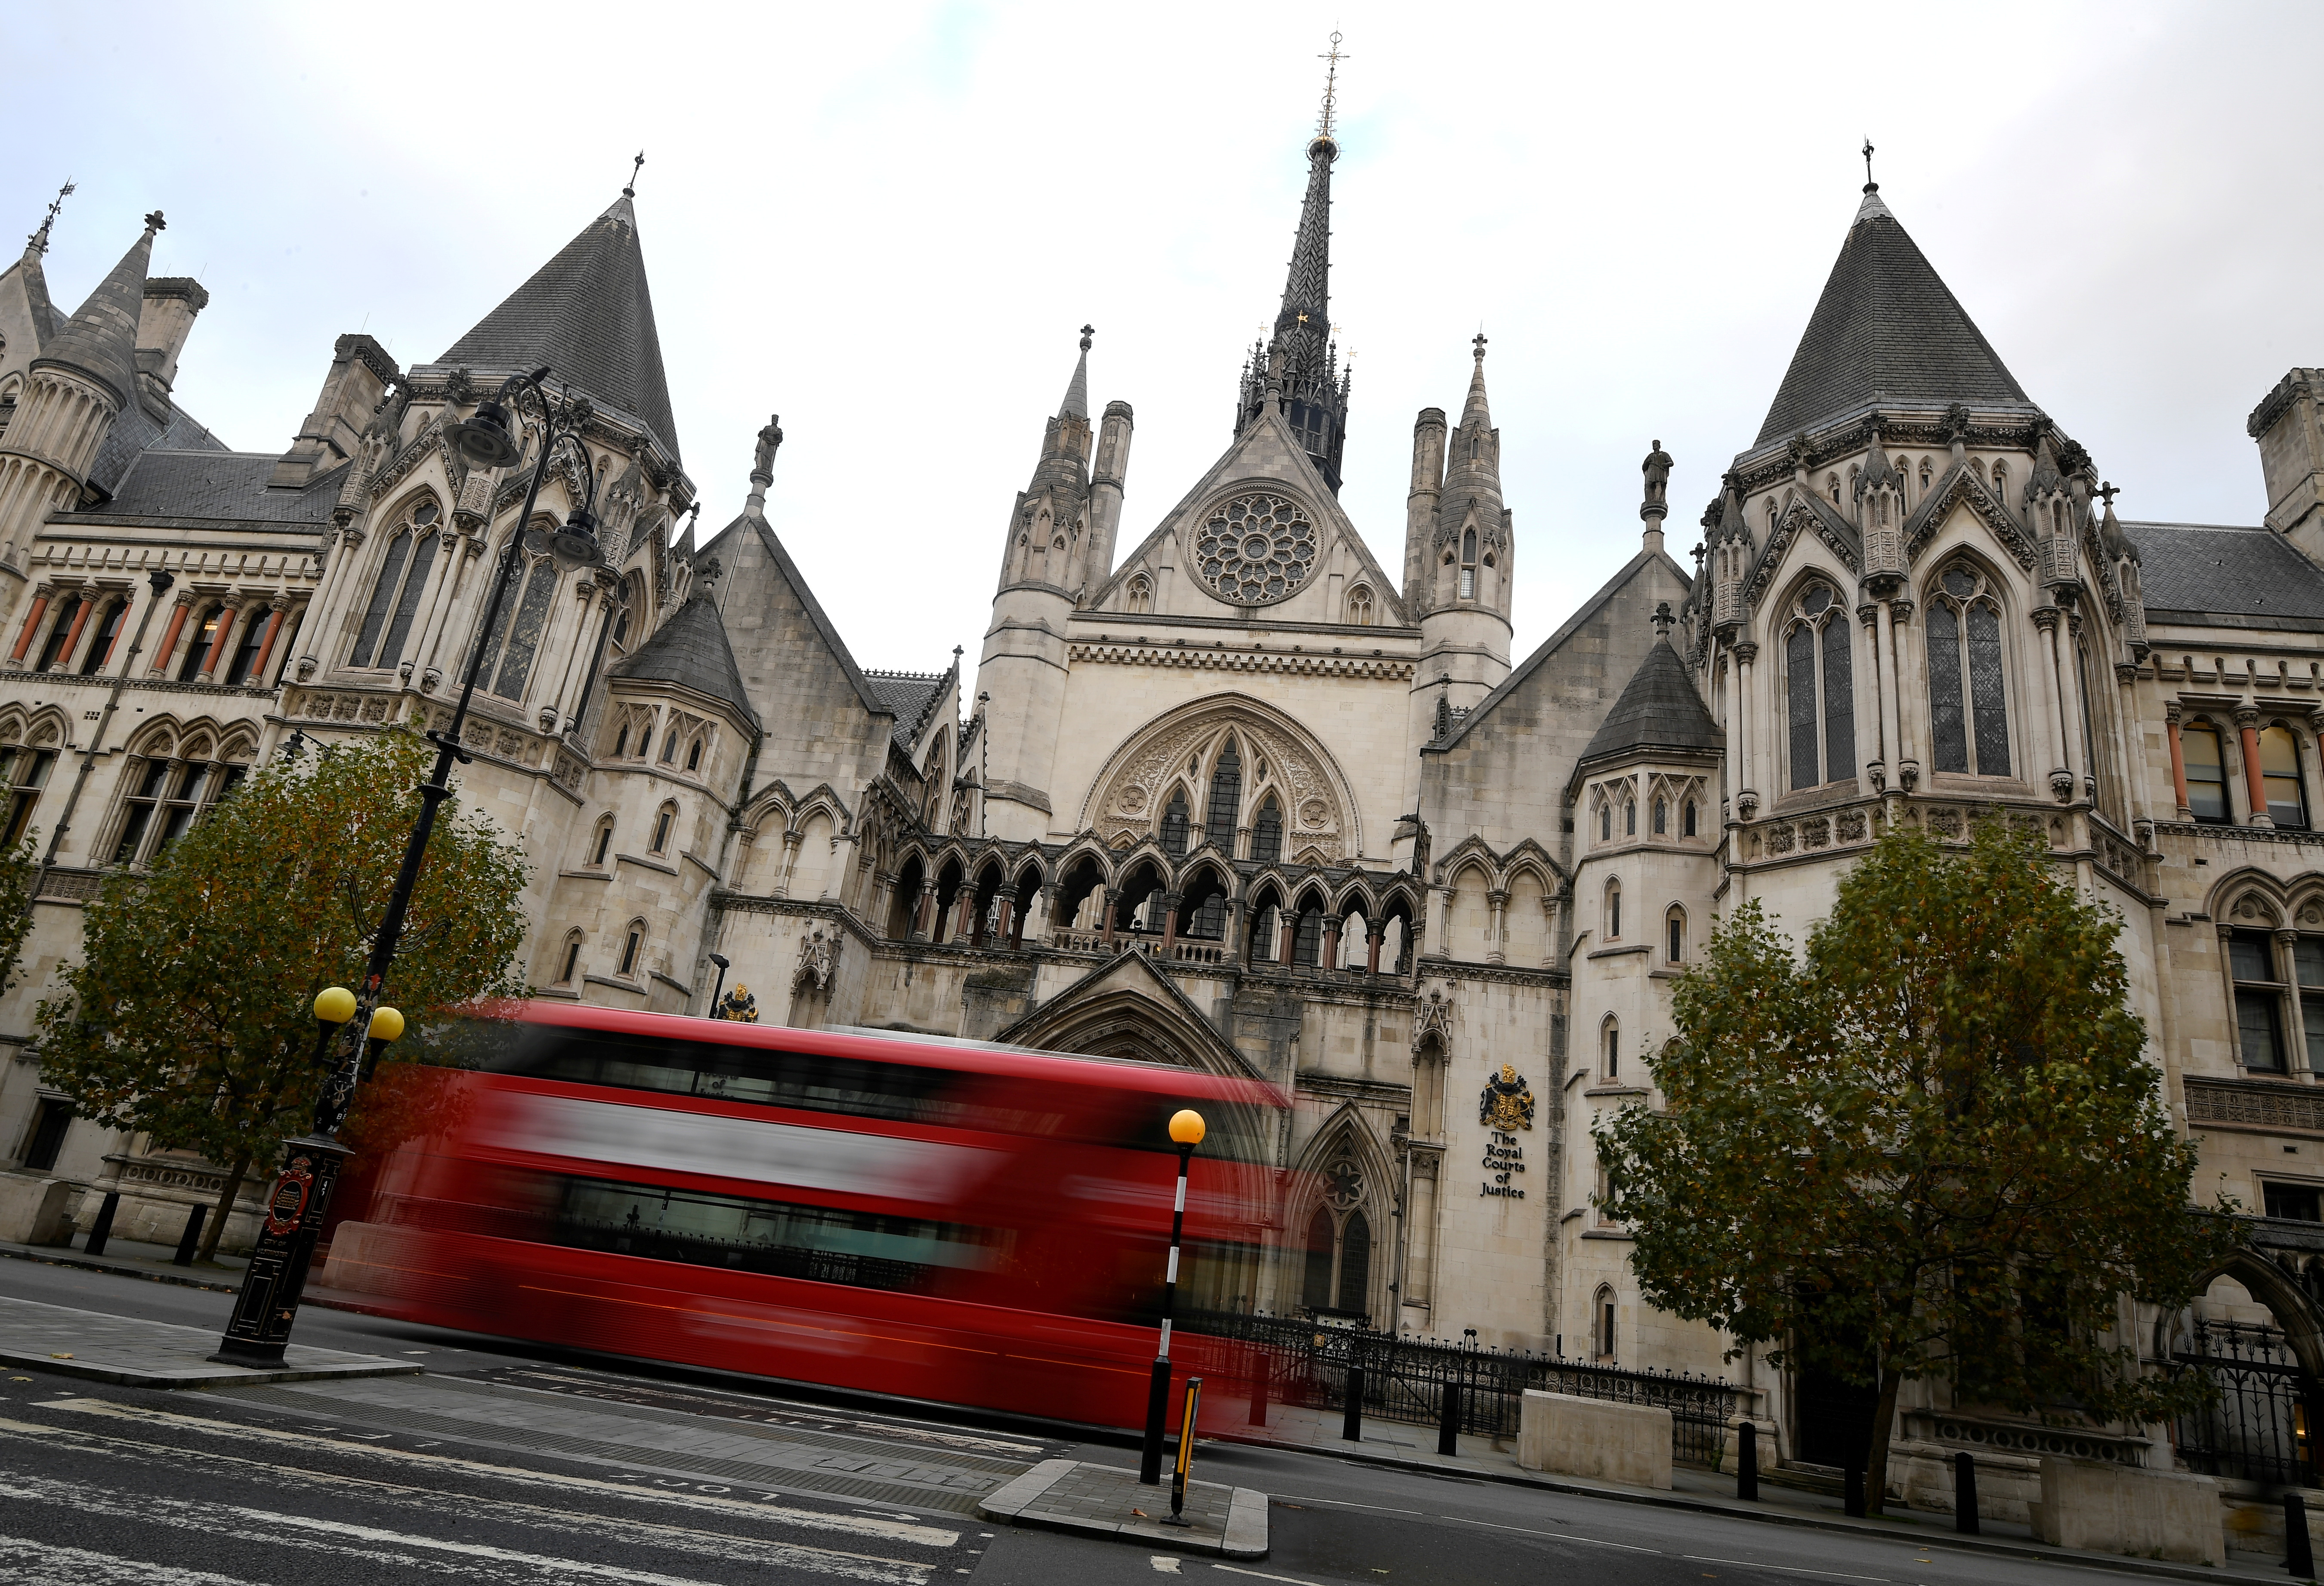 A general view of the Royal Courts of Justice, more commonly known as the High Court, where the libel case of actor Johnny Depp with The Sun newspaper and allegations of Depp's relationship with actor Amber Heard took place, ahead of the verdict being delivered online later today, in London, Britain November 2, 2020. REUTERS/Toby Melville/File Photo